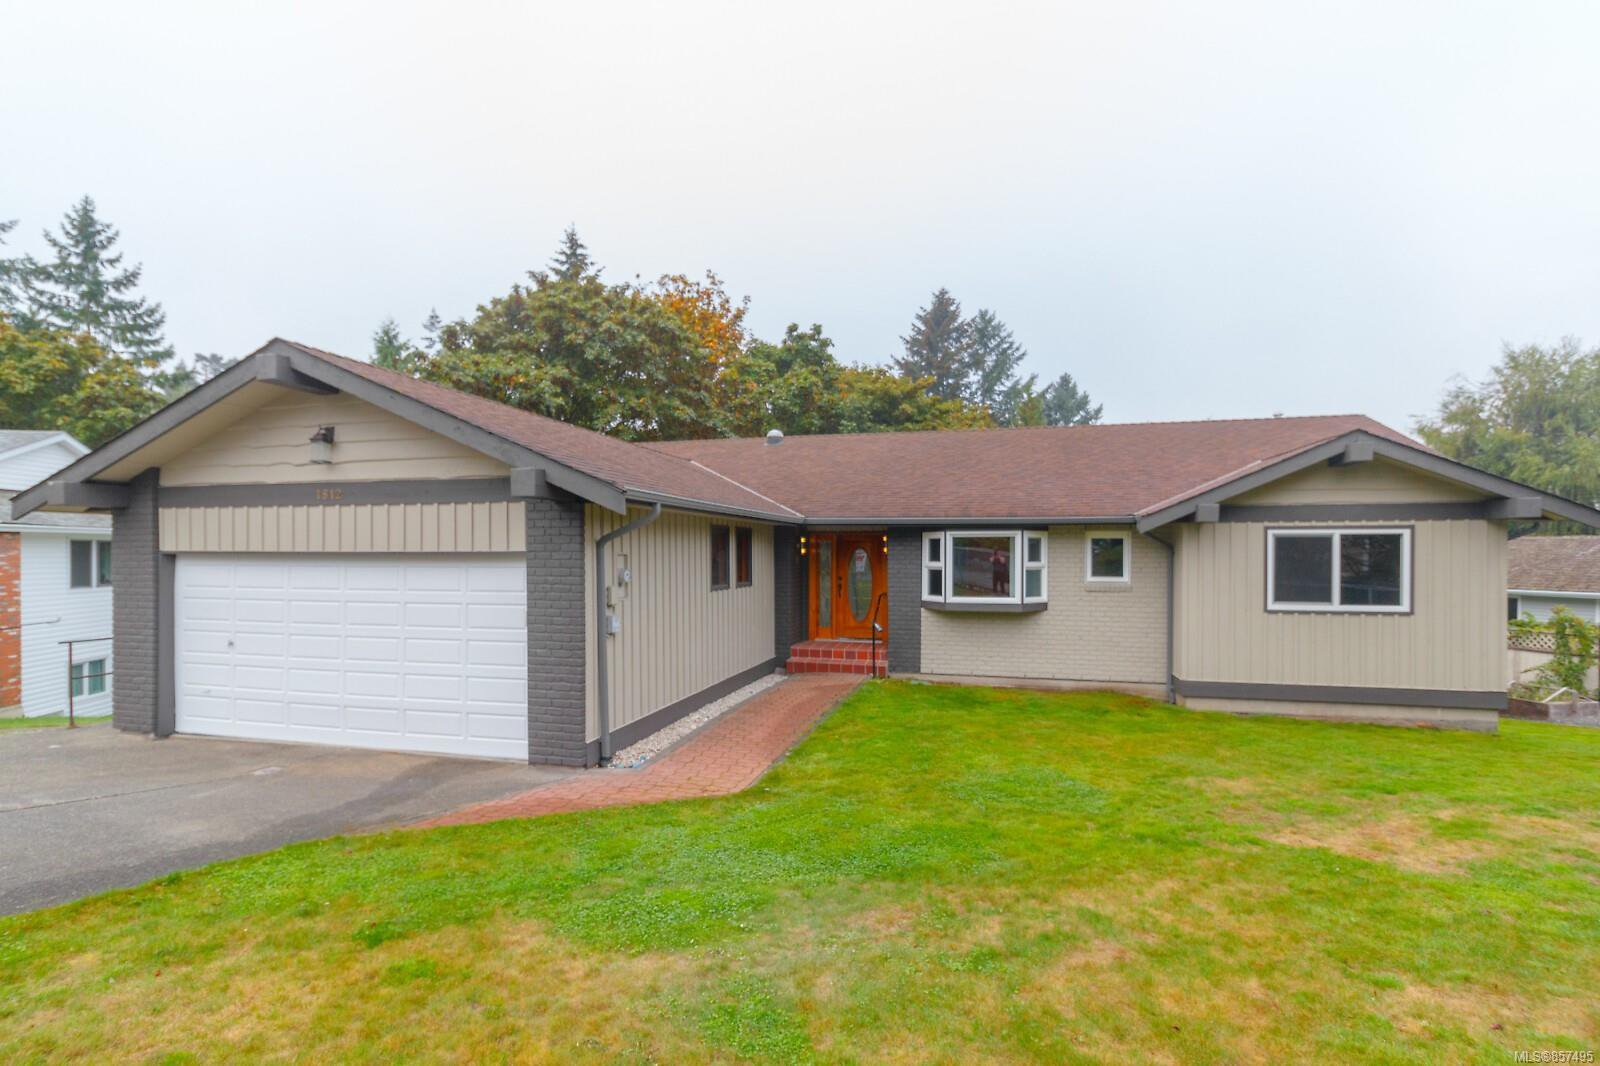 Main Photo: 1812 Pastel Cres in : CS Saanichton House for sale (Central Saanich)  : MLS®# 857495